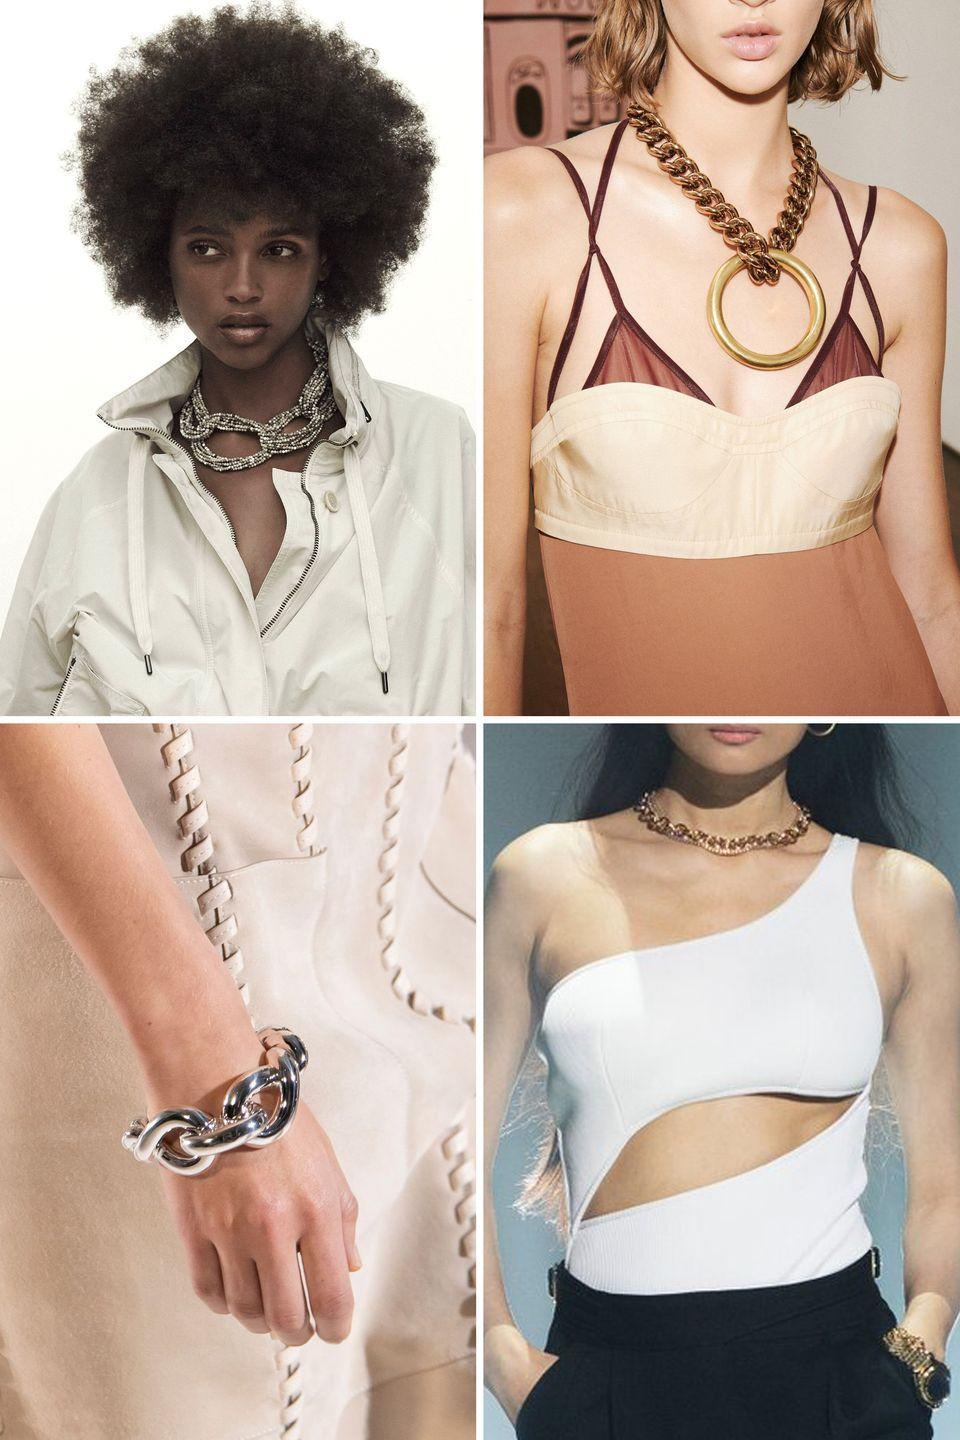 <p>It's safe to say that chains are not a trend. They have appeared in enough collections over several seasons that, at this point, we can call them a staple accessory. The one difference for spring 2021, however, is the width of the links. </p><p>From Victoria Beckham and Brunello Cucinelli to Brandon Maxwell and Hermès, chains were all about being large and in charge. They were bold and commanded attention. Whether it was on a flirty silk slip, complementing a sleek top with cutouts, or paired with a windbreaker, designers proved that chains work for a variety of styles. And even if next season brings more of a dainty selection, rest assured that sizable links will come back time and again. Like the LBD, they are here to stay. </p><p>Looking for a wise jewelry investment? Check out the gang of chains below. </p><p><em>Clockwise from top left: Brunello Cucinelli, Victoria Beckham, Brandon Maxwell, Hermès.</em></p>